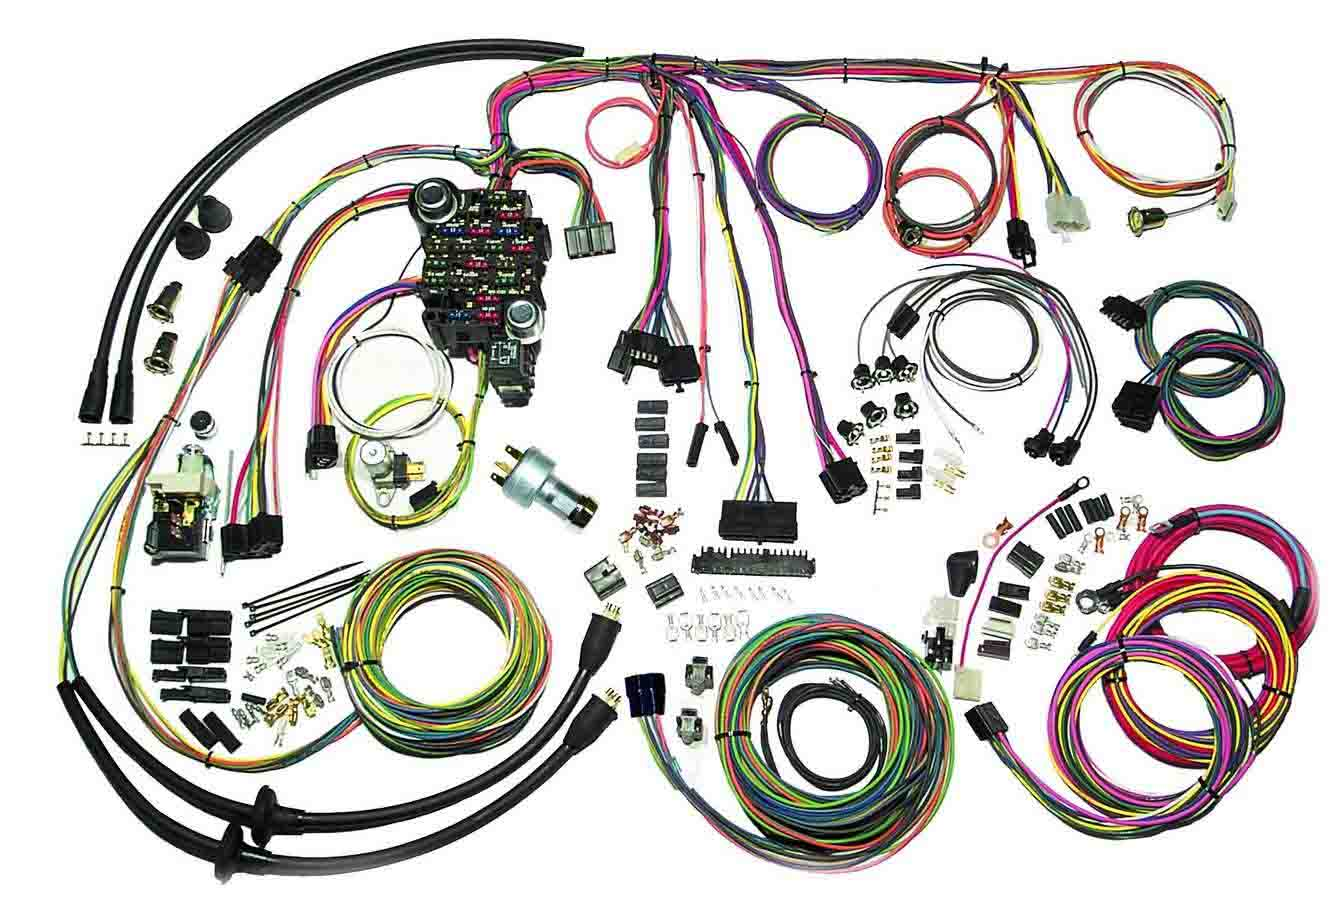 Aeromotive Harness Wiring Shop For Harnesses Etheridge Race Parts 1344x900